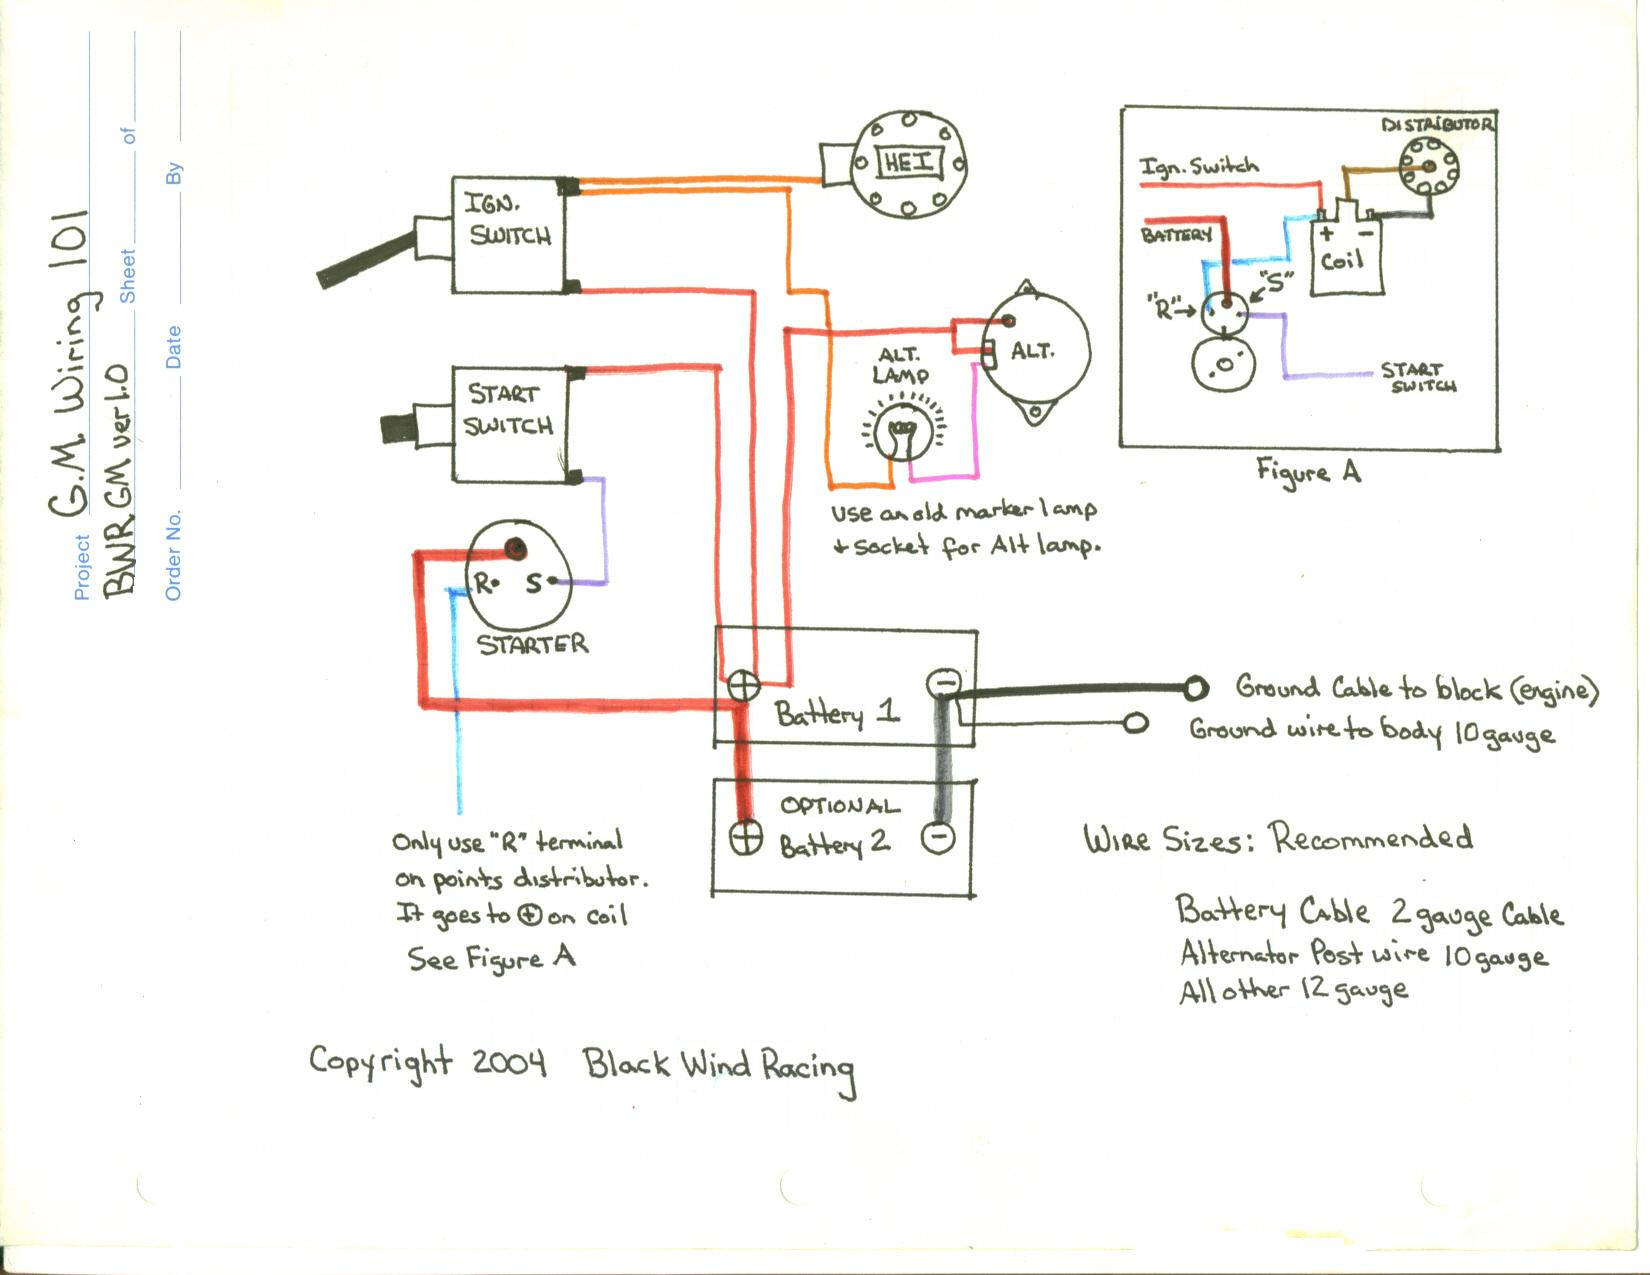 general motors wiring schematics general motors wiring harness general motors wiring diagrams - pokemon go search for: tips, tricks, cheats - search at search.com